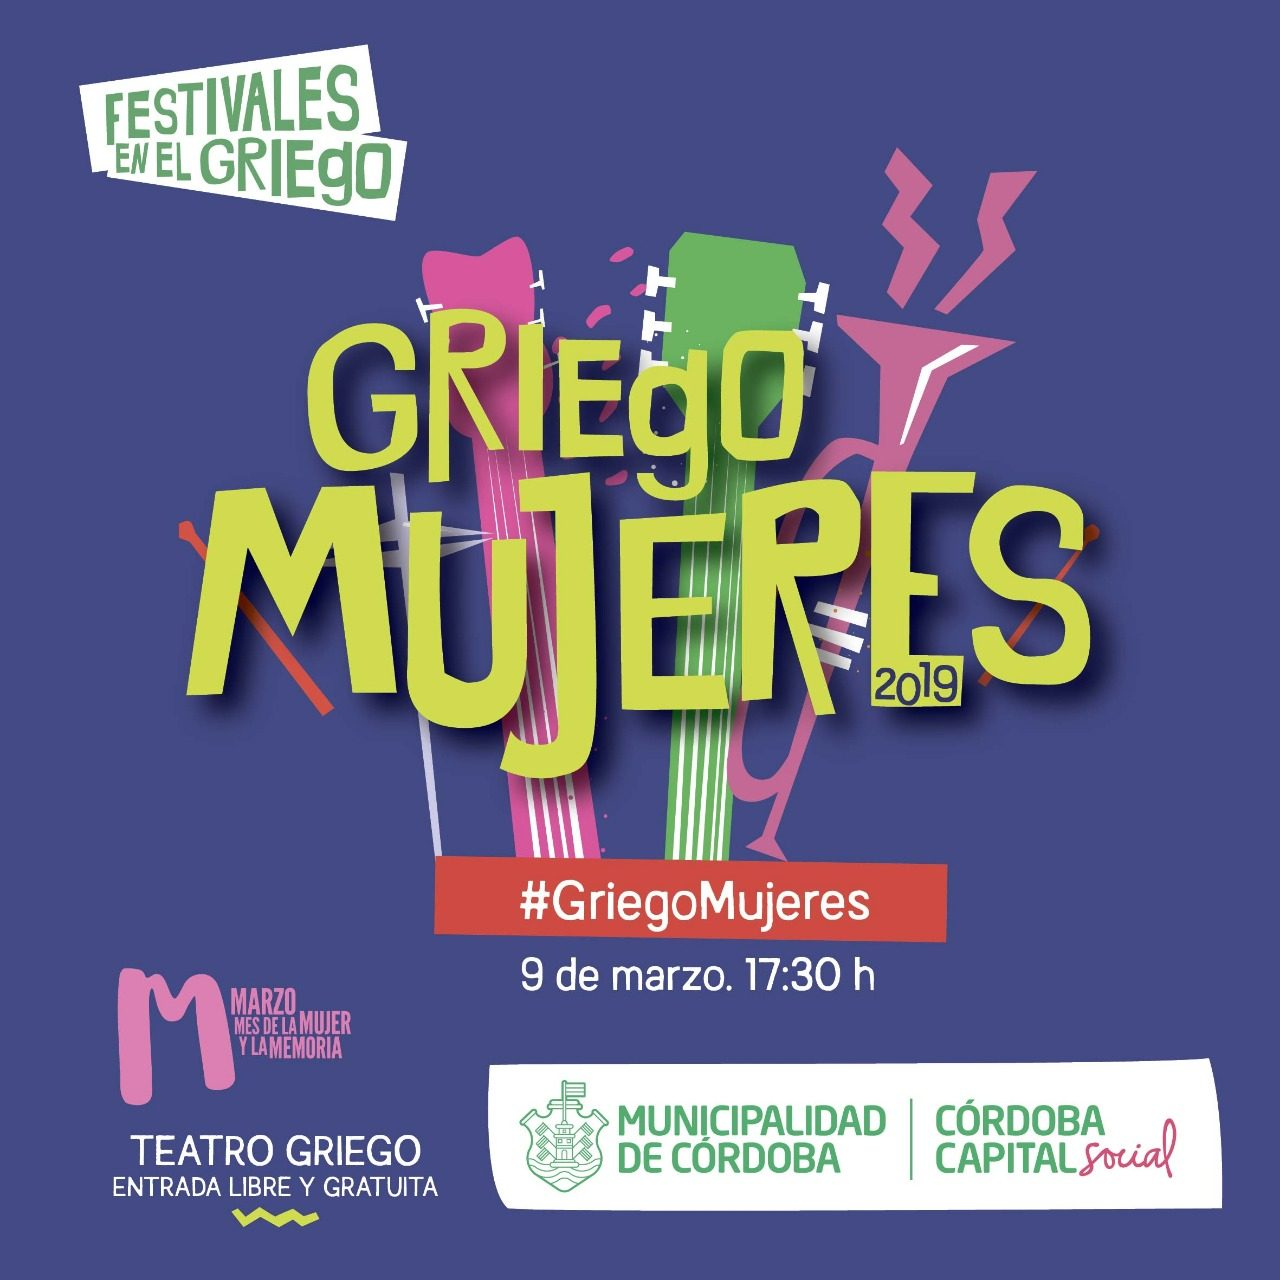 Griego Mujeres 2019